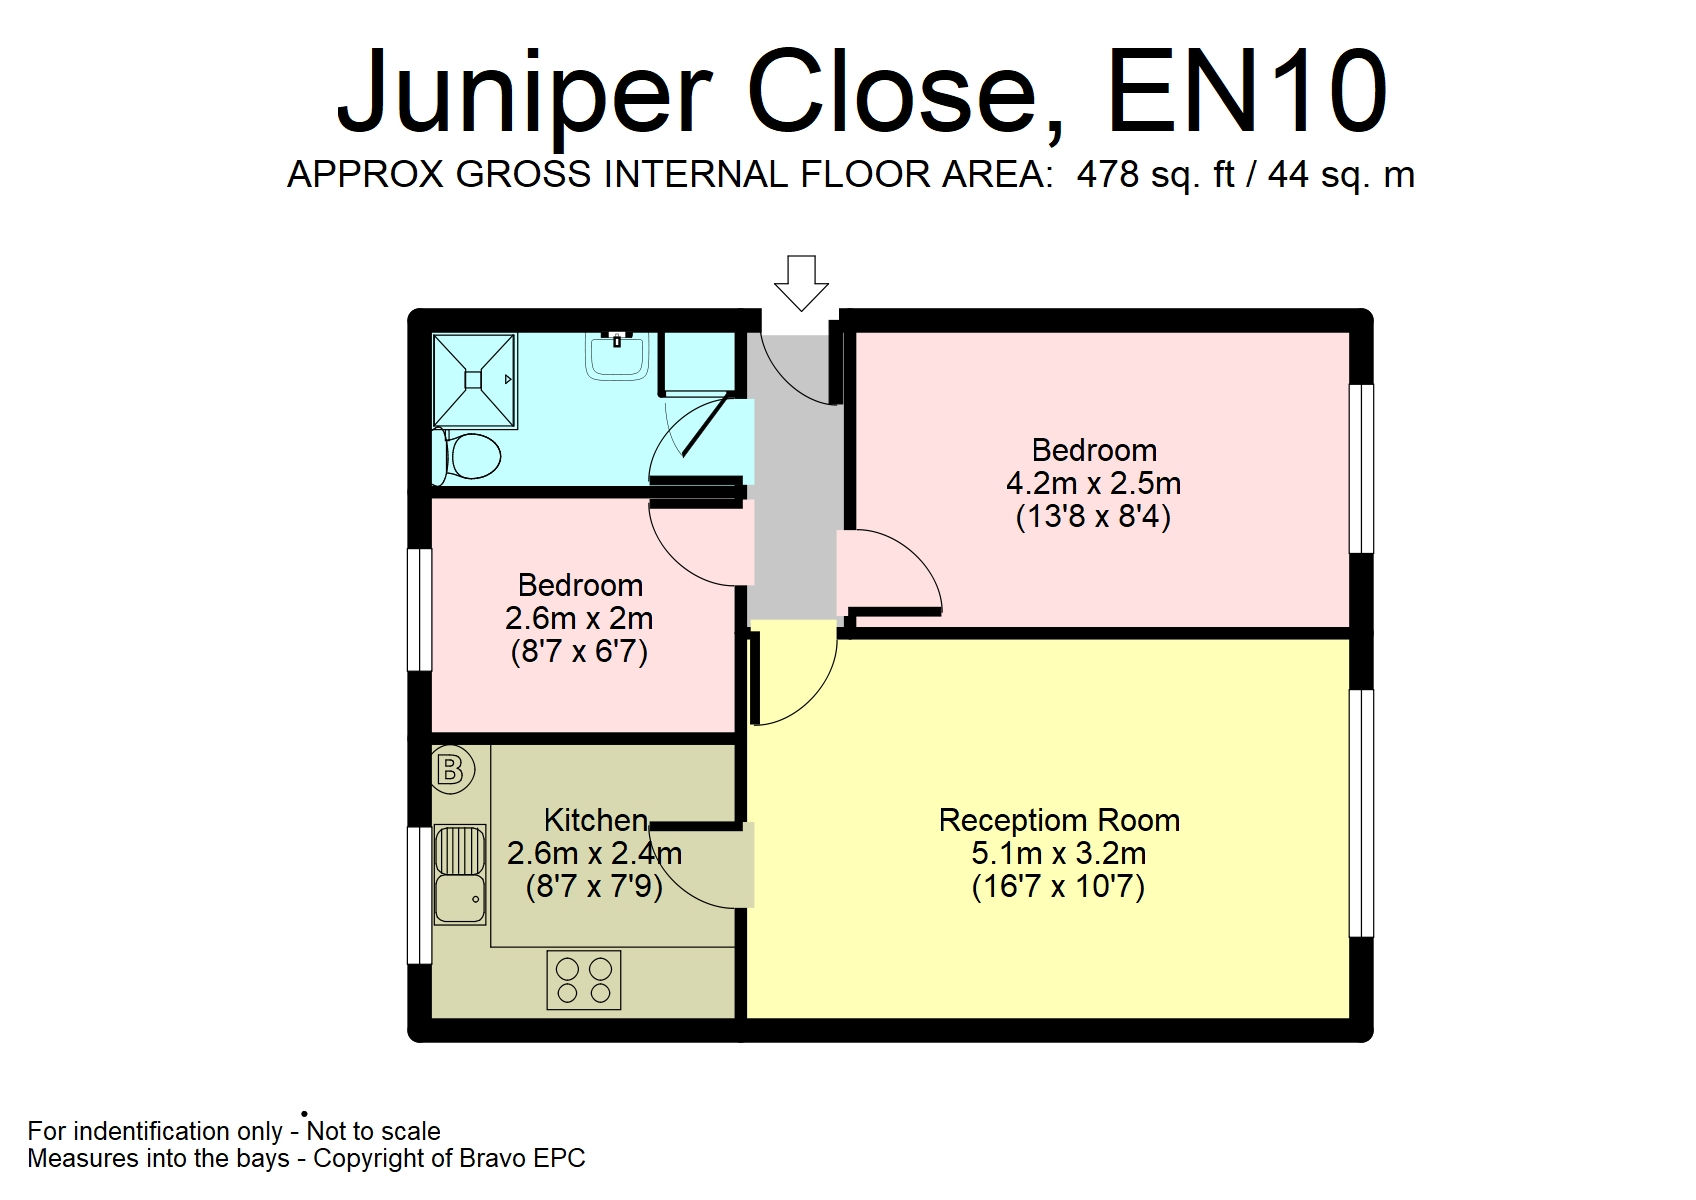 customer_1/branch_2/client_45360/sale_property/43 Juniper Close, EN_1617284217.jpeg